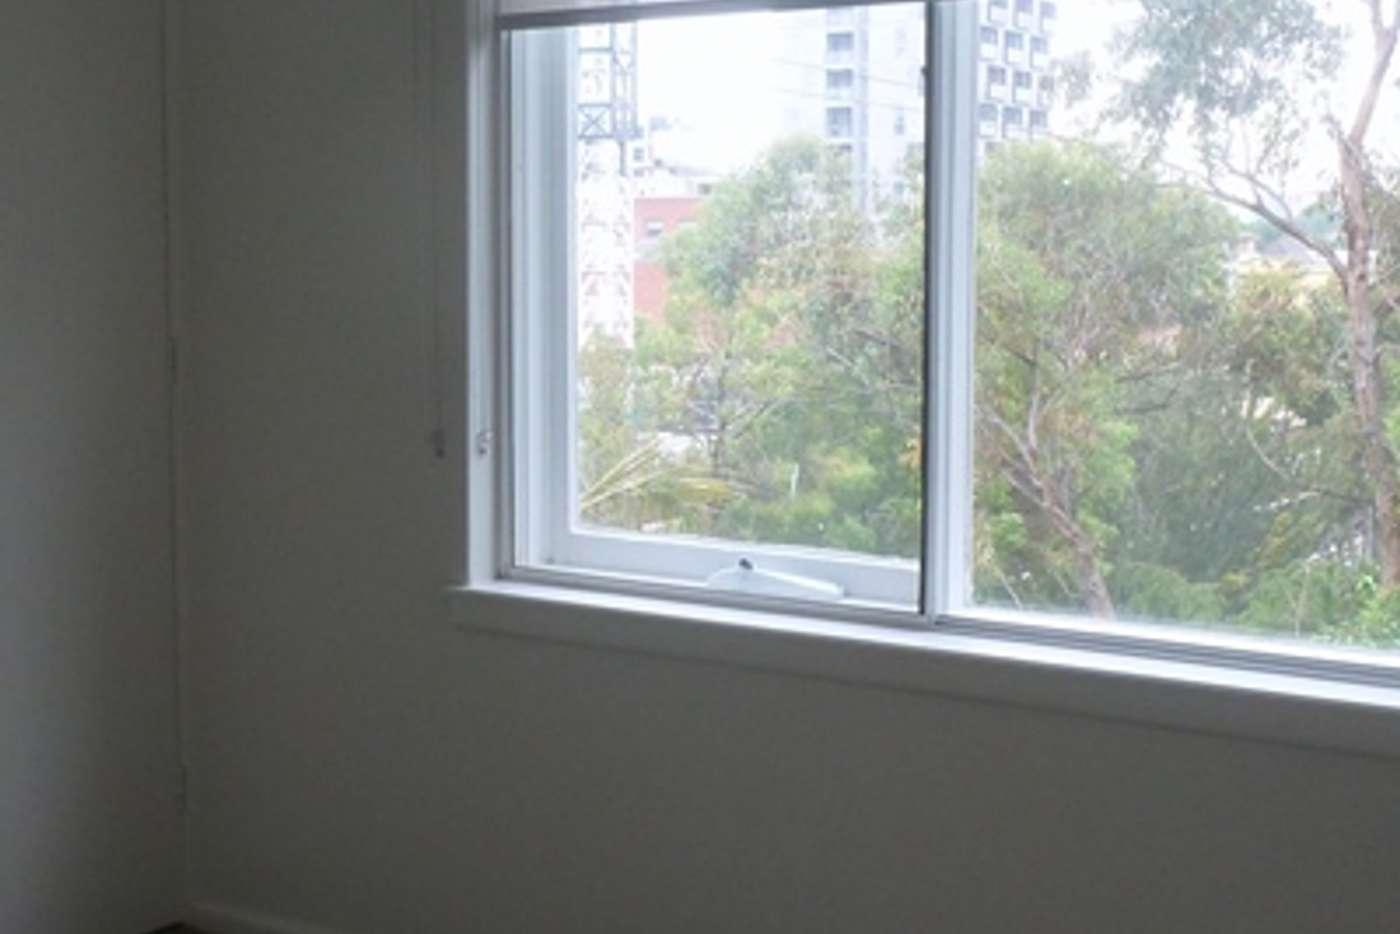 Sixth view of Homely unit listing, 13/22 Darling Street, South Yarra VIC 3141